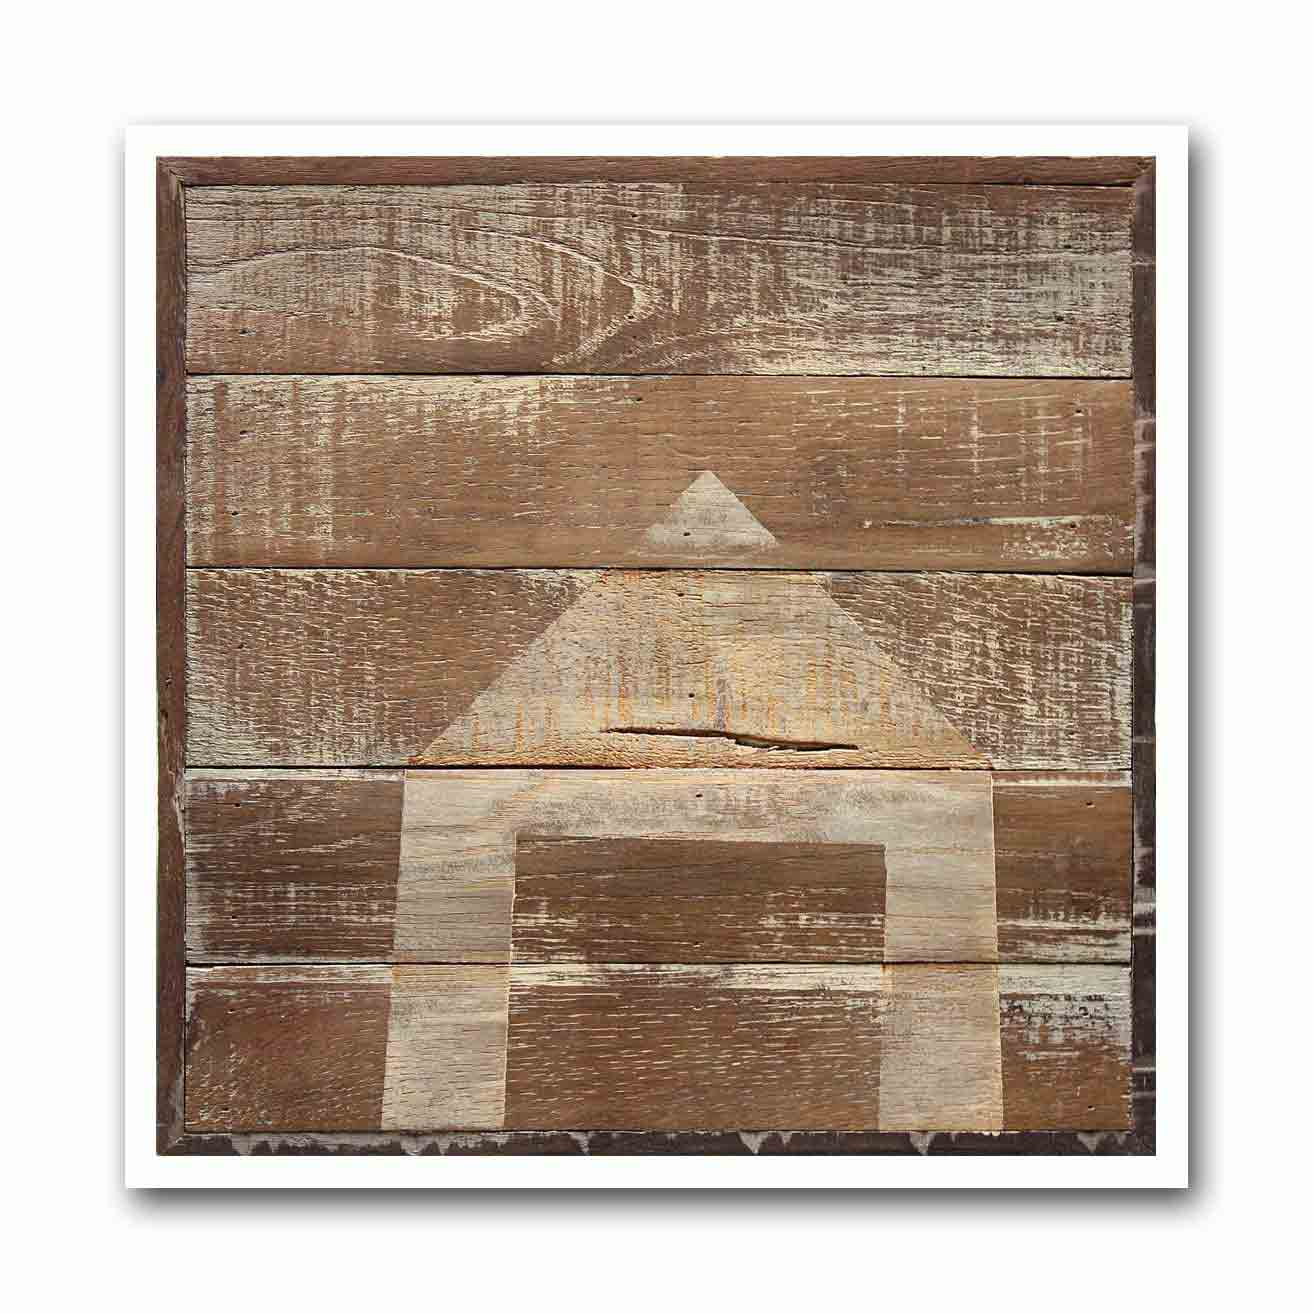 Swiss Wood Shed #5 Archival Print